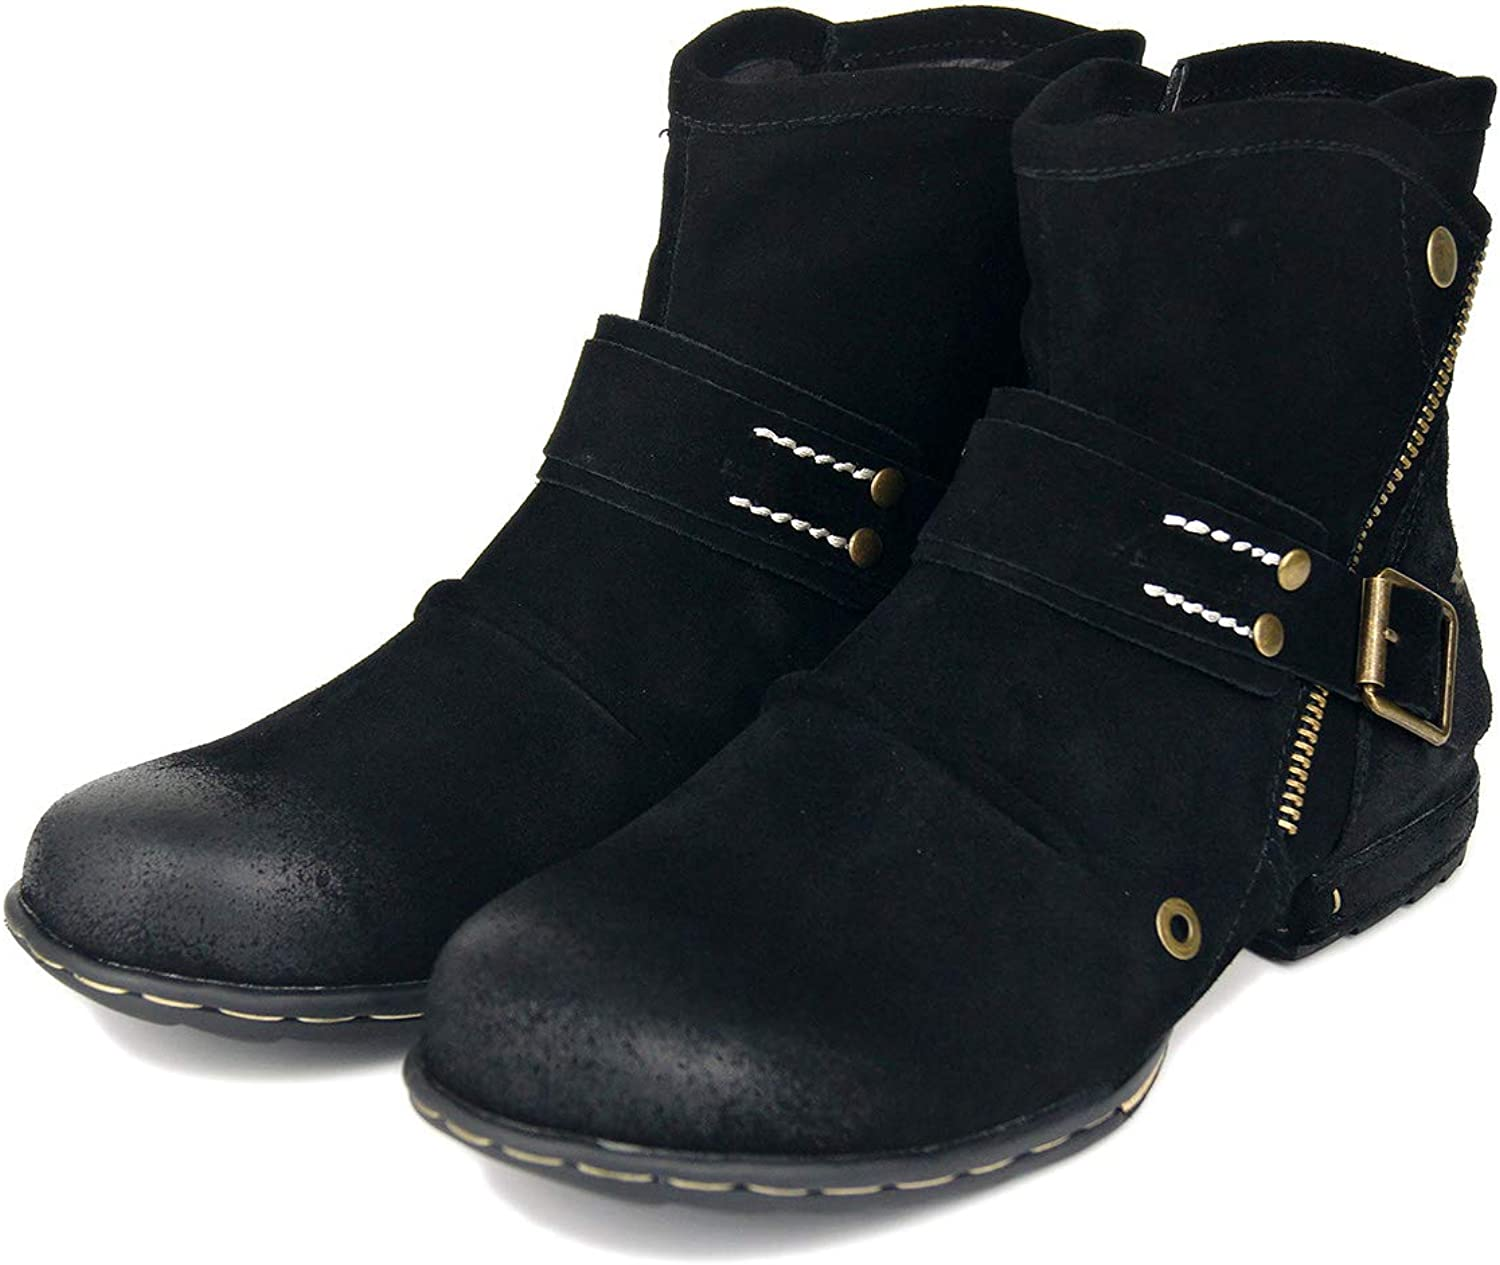 Men's Motorcycle Western Ankle Boots Riding wear Casual Outdoor Motorcycle Boots